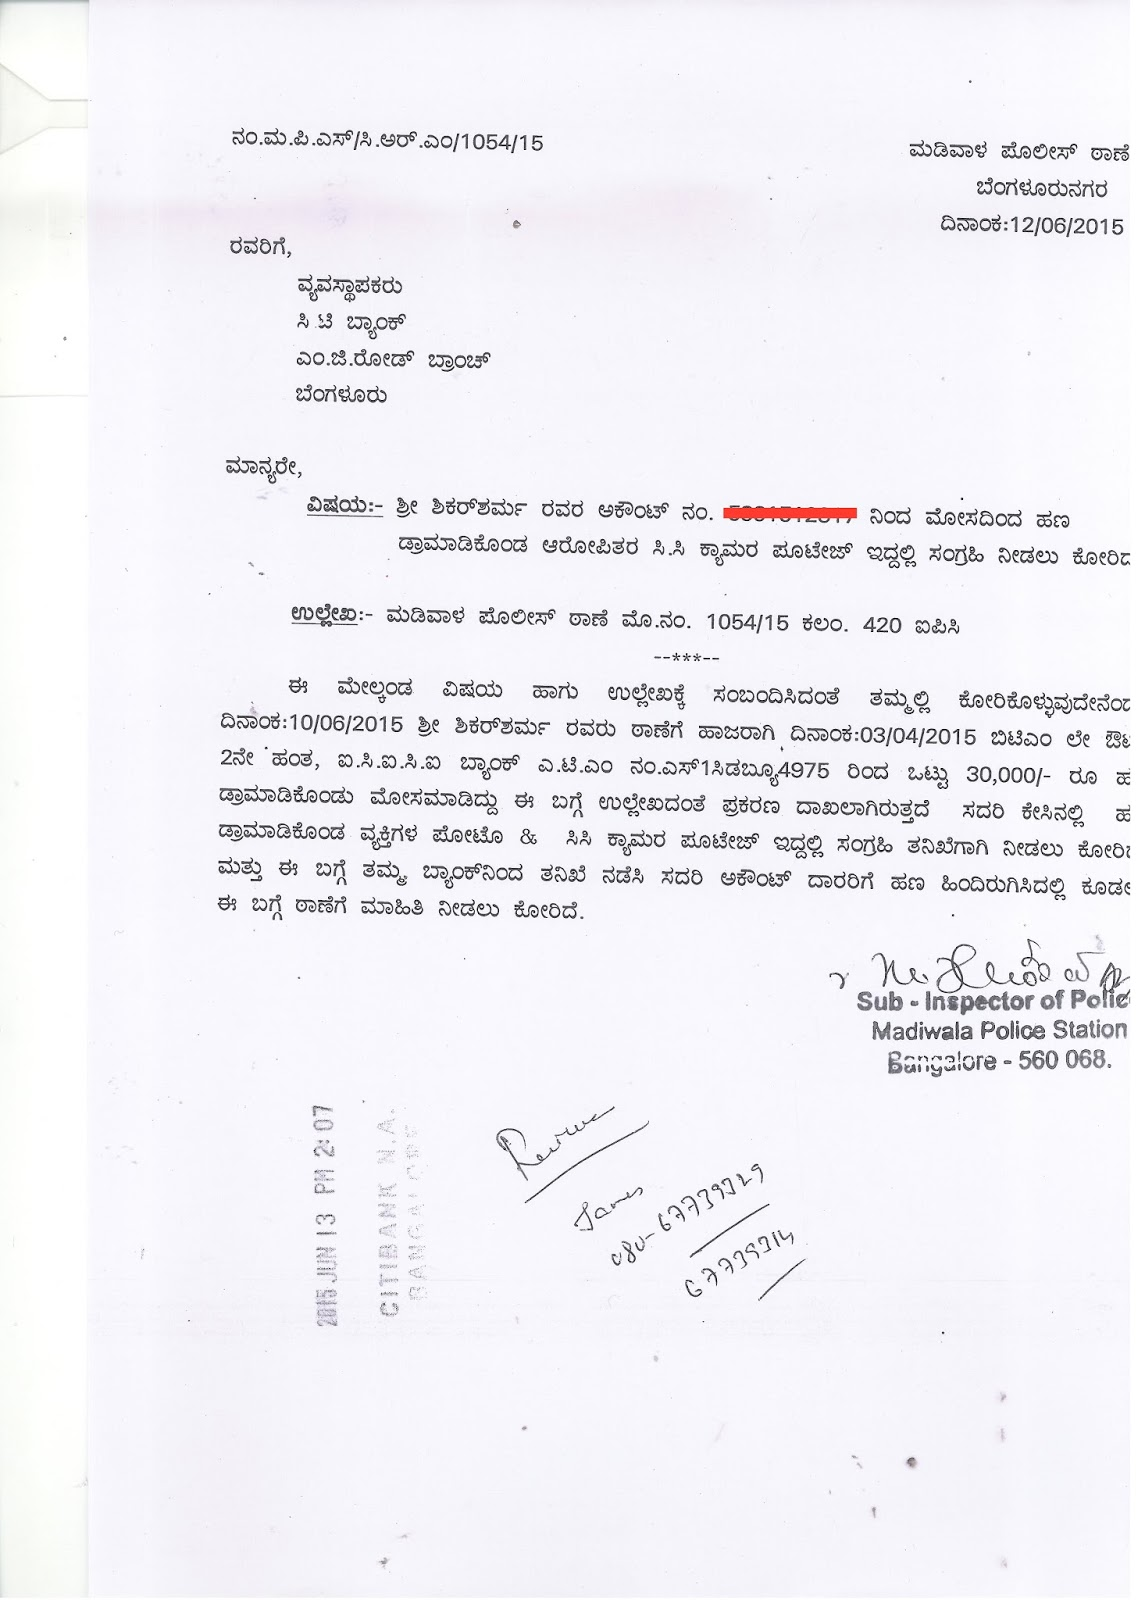 Complaint Letter Format Icici Bank.  Letter Of Credit Icici Bank Citibank And Security Exposed July 2015 letter of credit icici bank 28 images trade